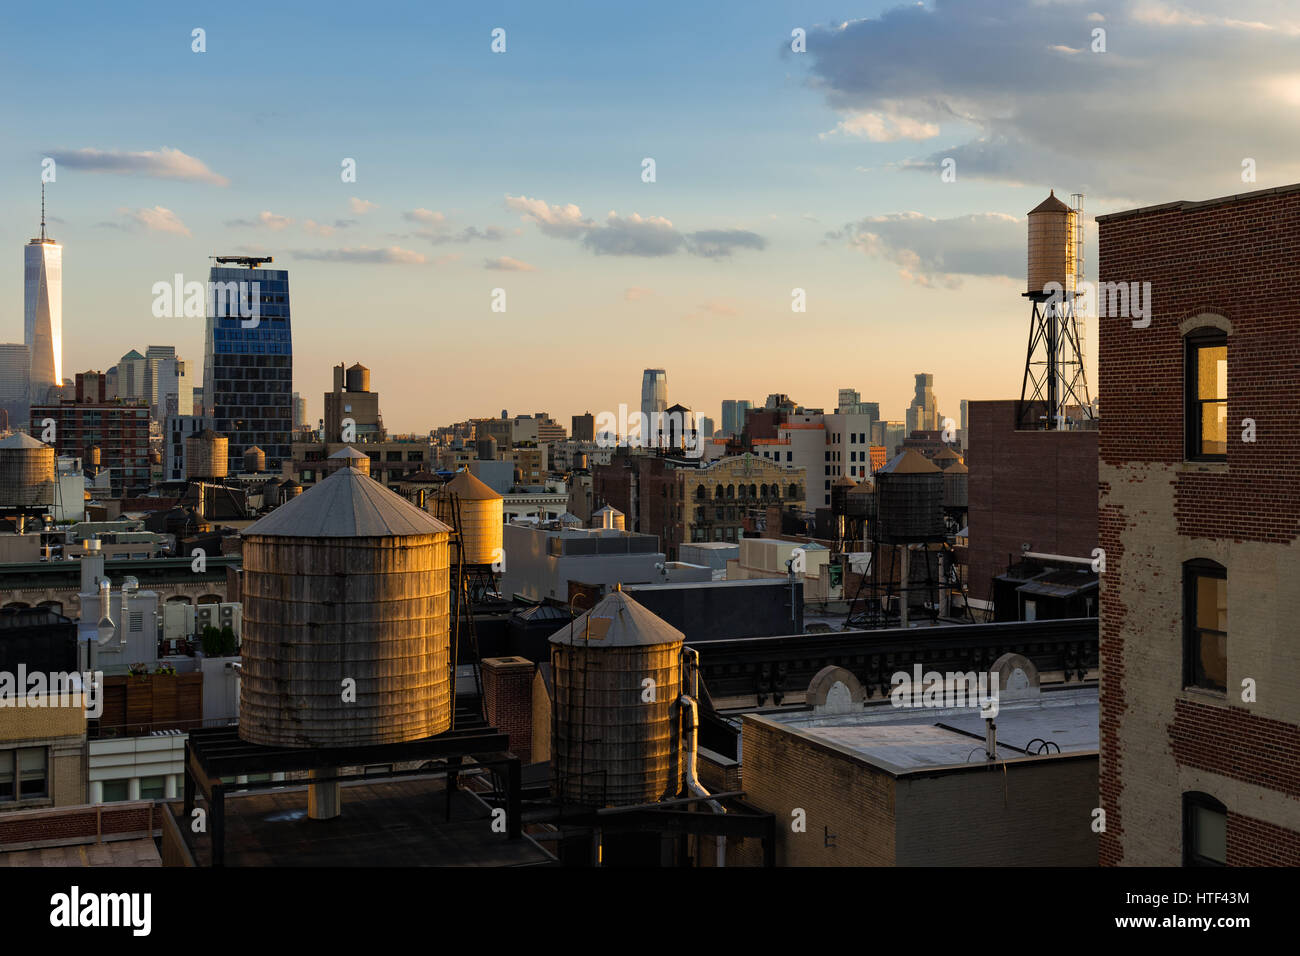 Chelsea rooftops in summer sunset light with high-rises, water towers and the World Trade Center in the distance. - Stock Image